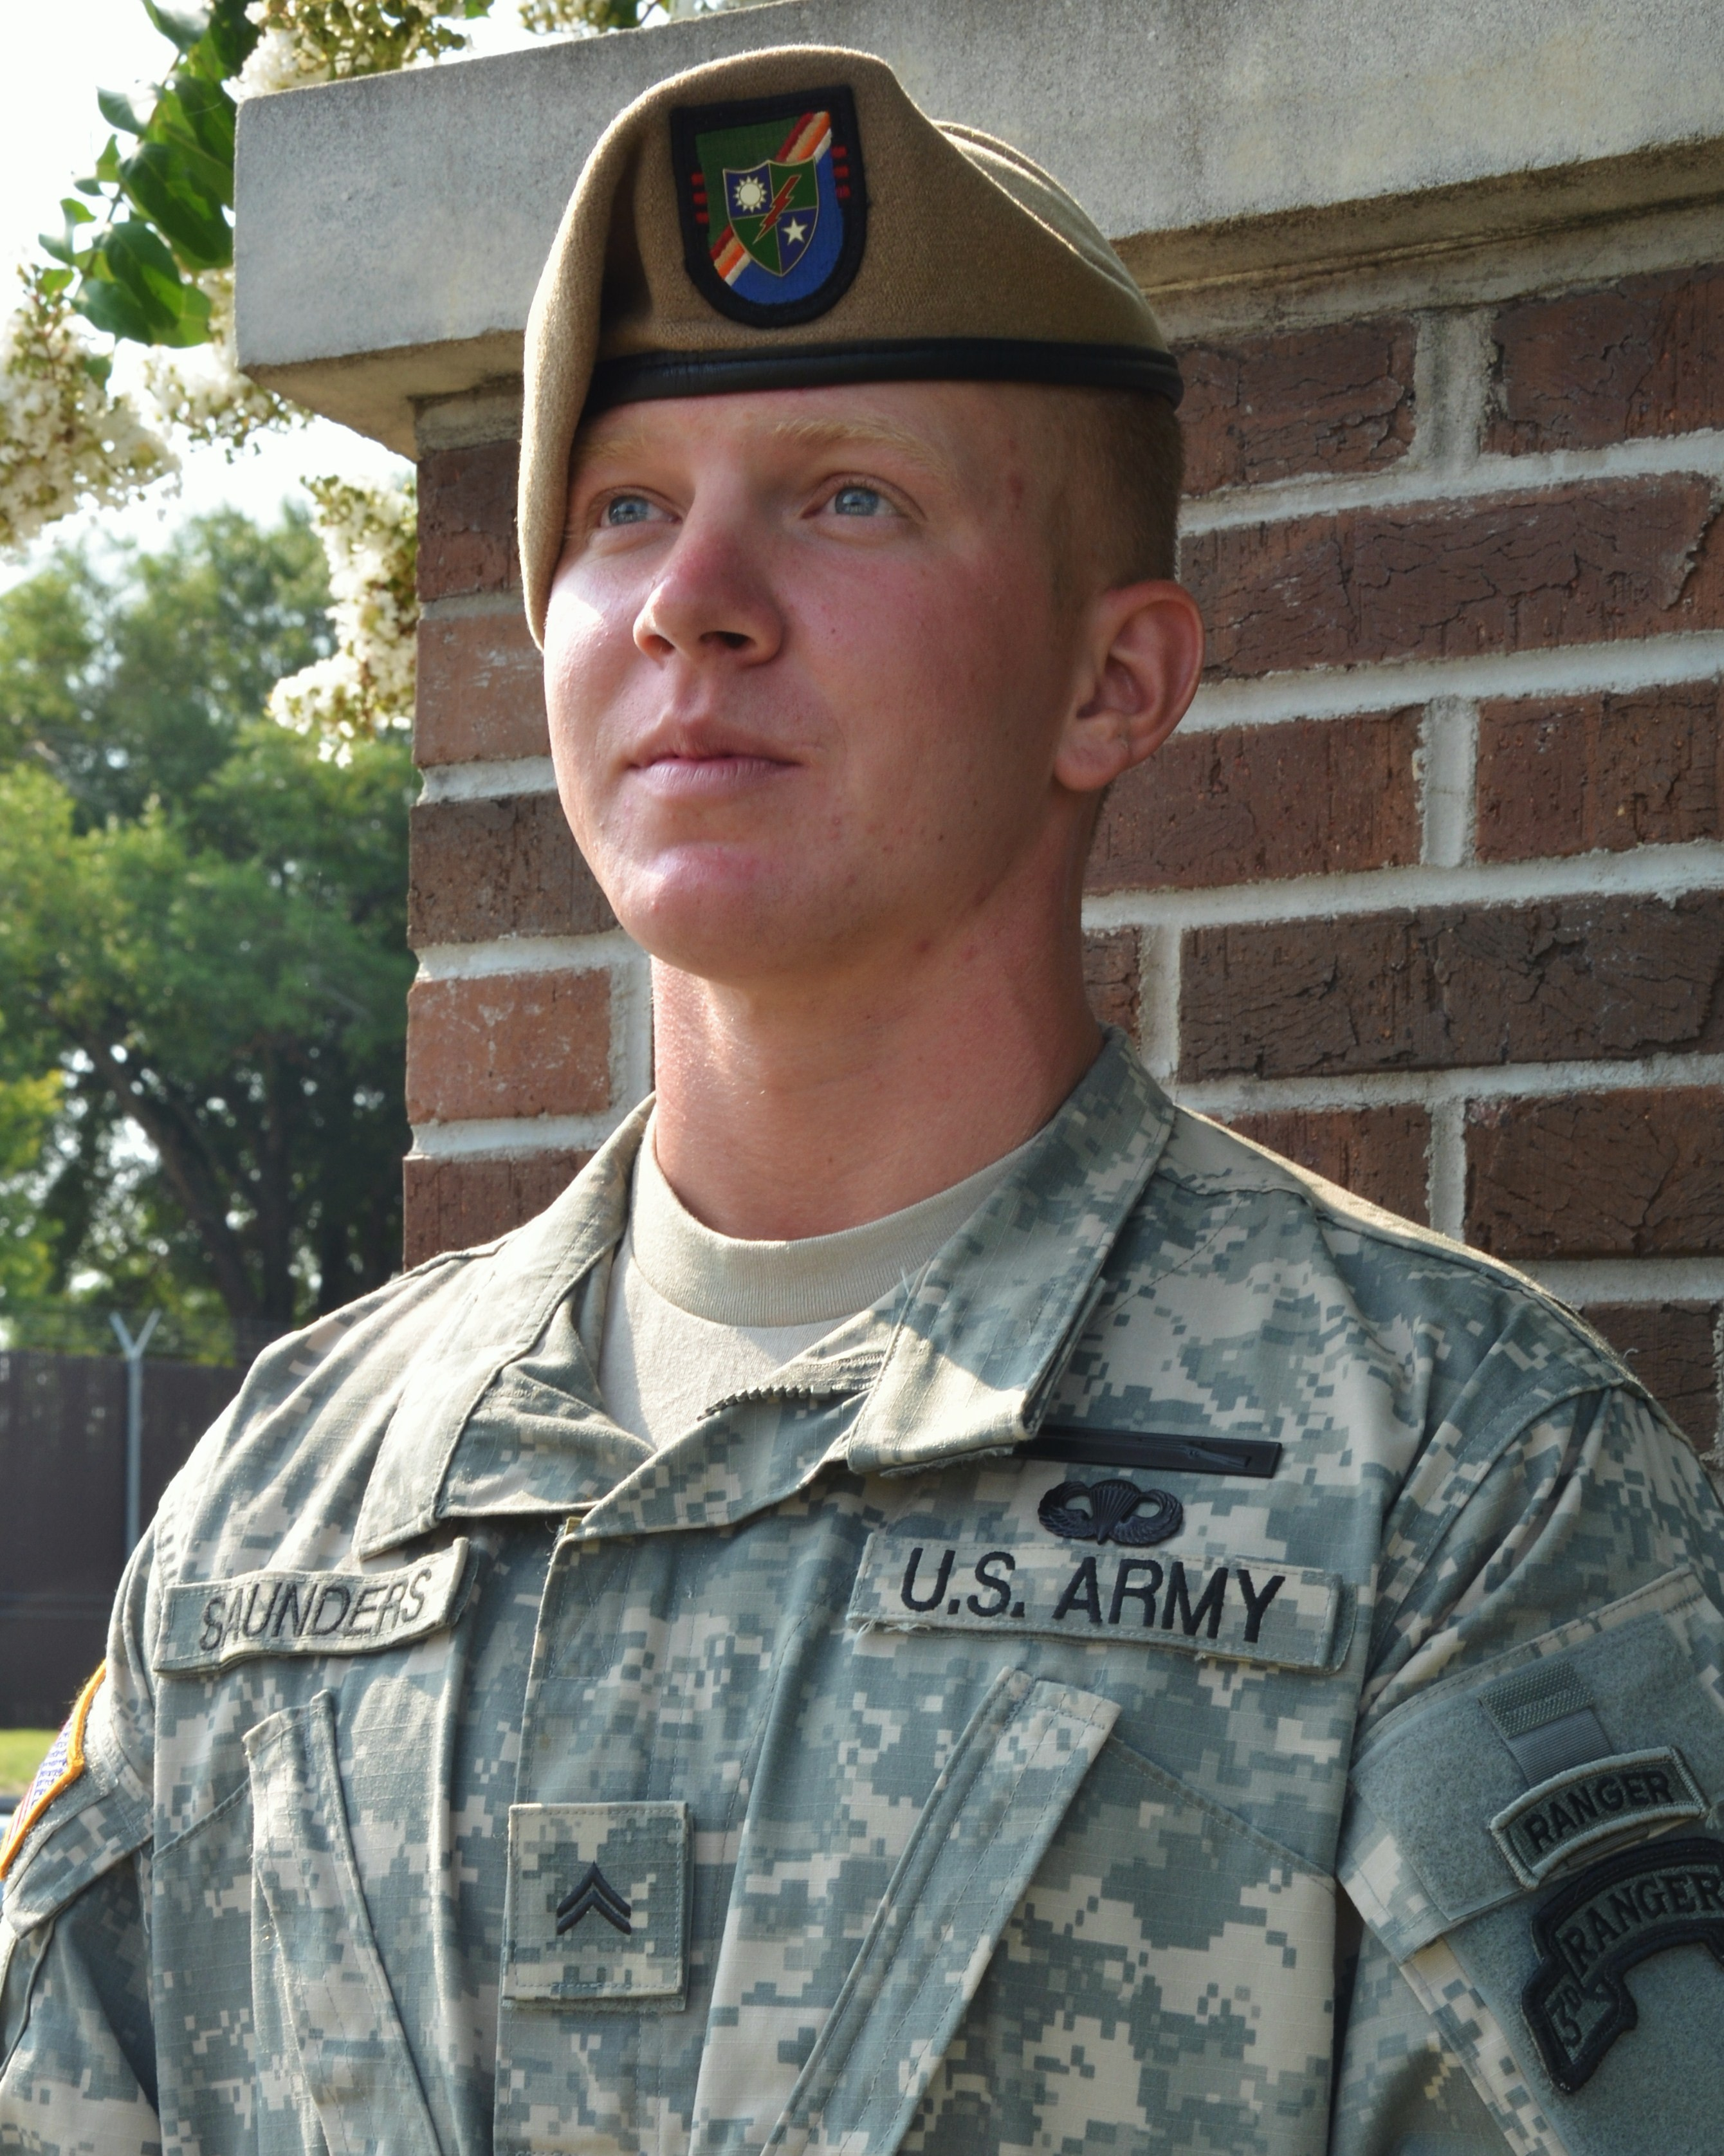 defeating cancer mission complete article the united states army